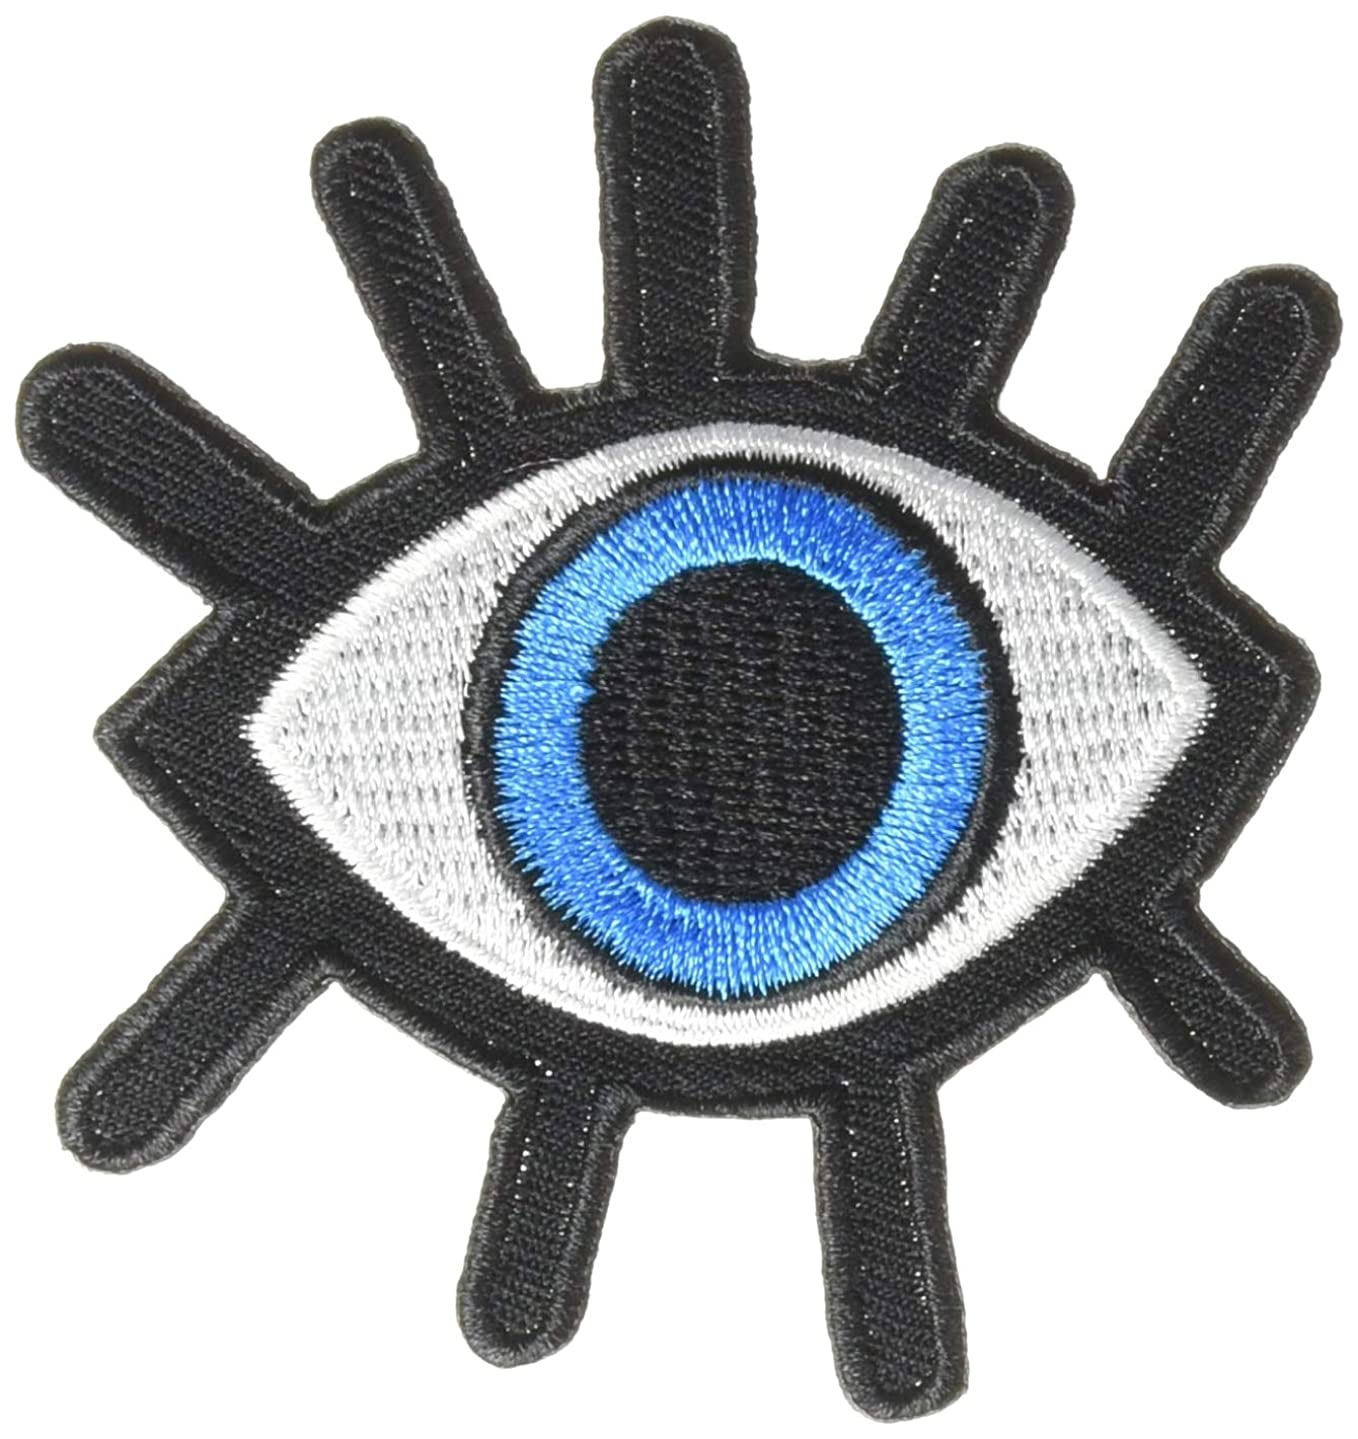 Pack of 2 Eye eyeball tattoo wicca occult goth punk retro applique iron-on patch